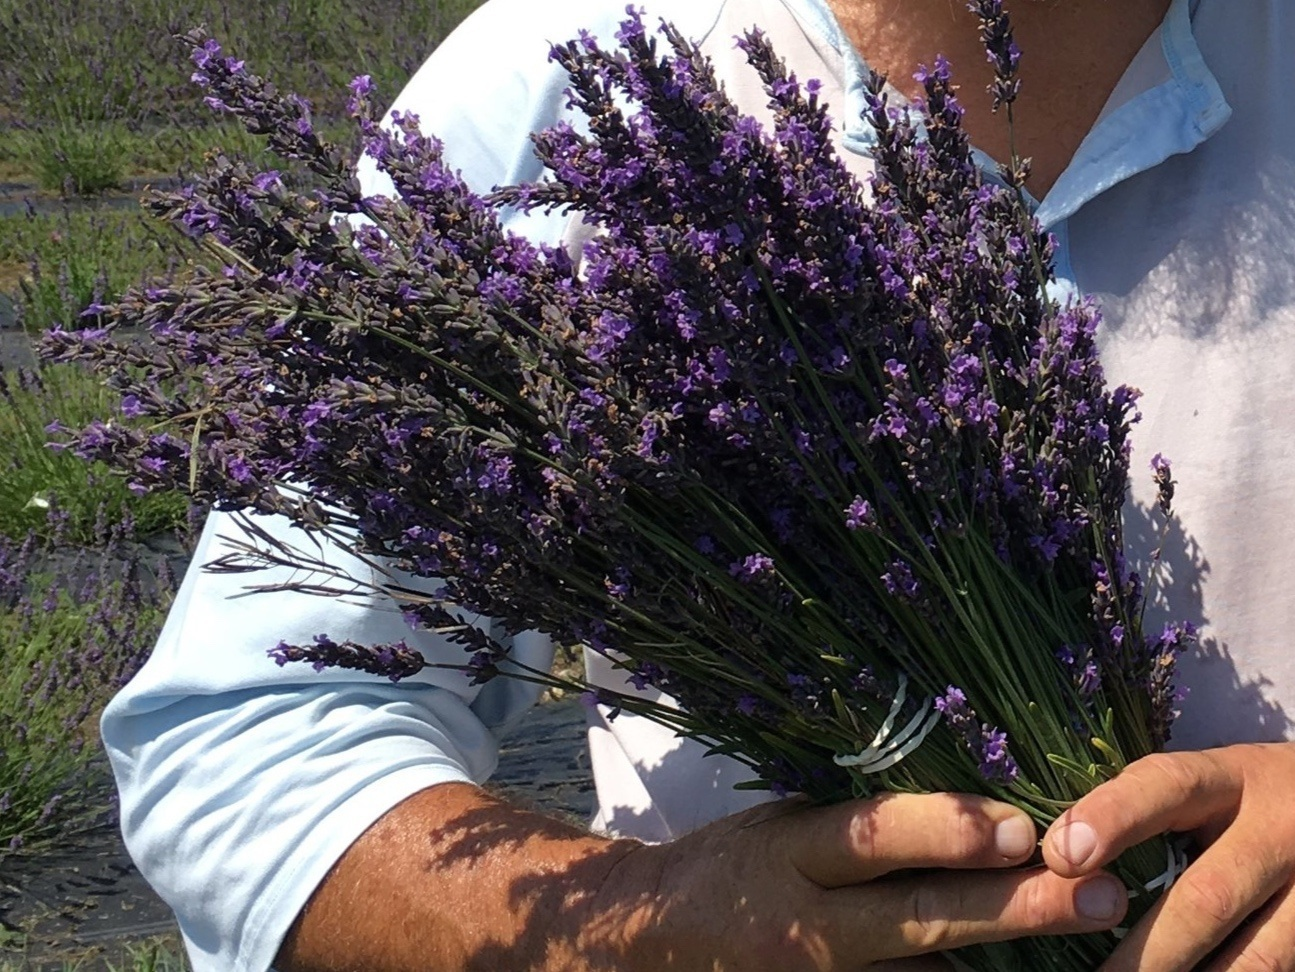 Fresh Bouquets - Get them while they last (July to early August). Nothing compares to the smell of fresh-cut lavender. Give a bouquet to your friend — keep one for yourself.